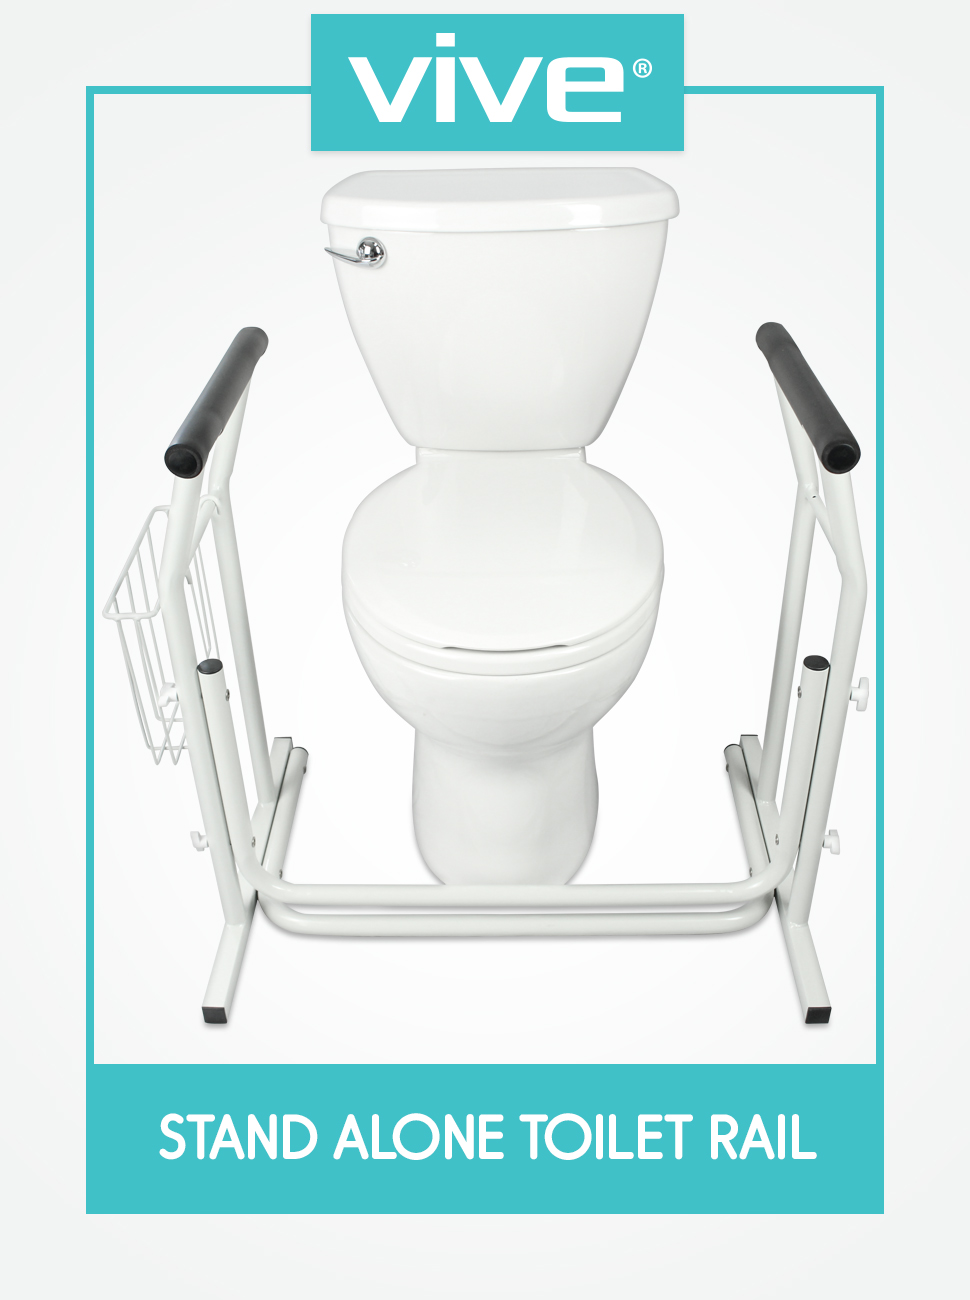 Stand Alone Toilet Rail - Medical Bathroom Safety Assist Frame with Support Grab Bar Handles & Raili